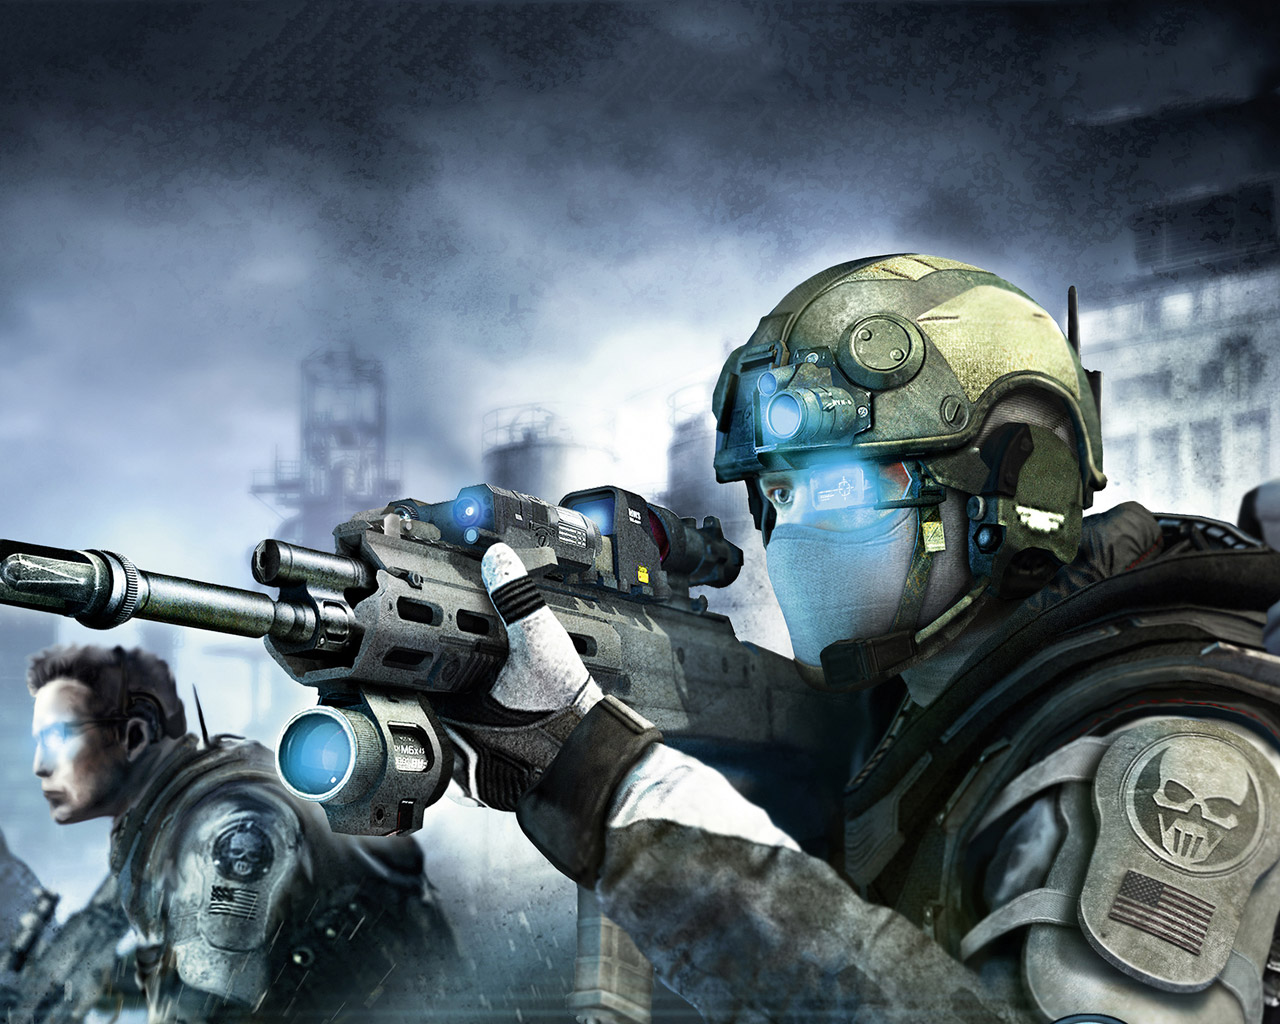 Ghost Recon: Future Soldier Wallpaper in 1280x1024